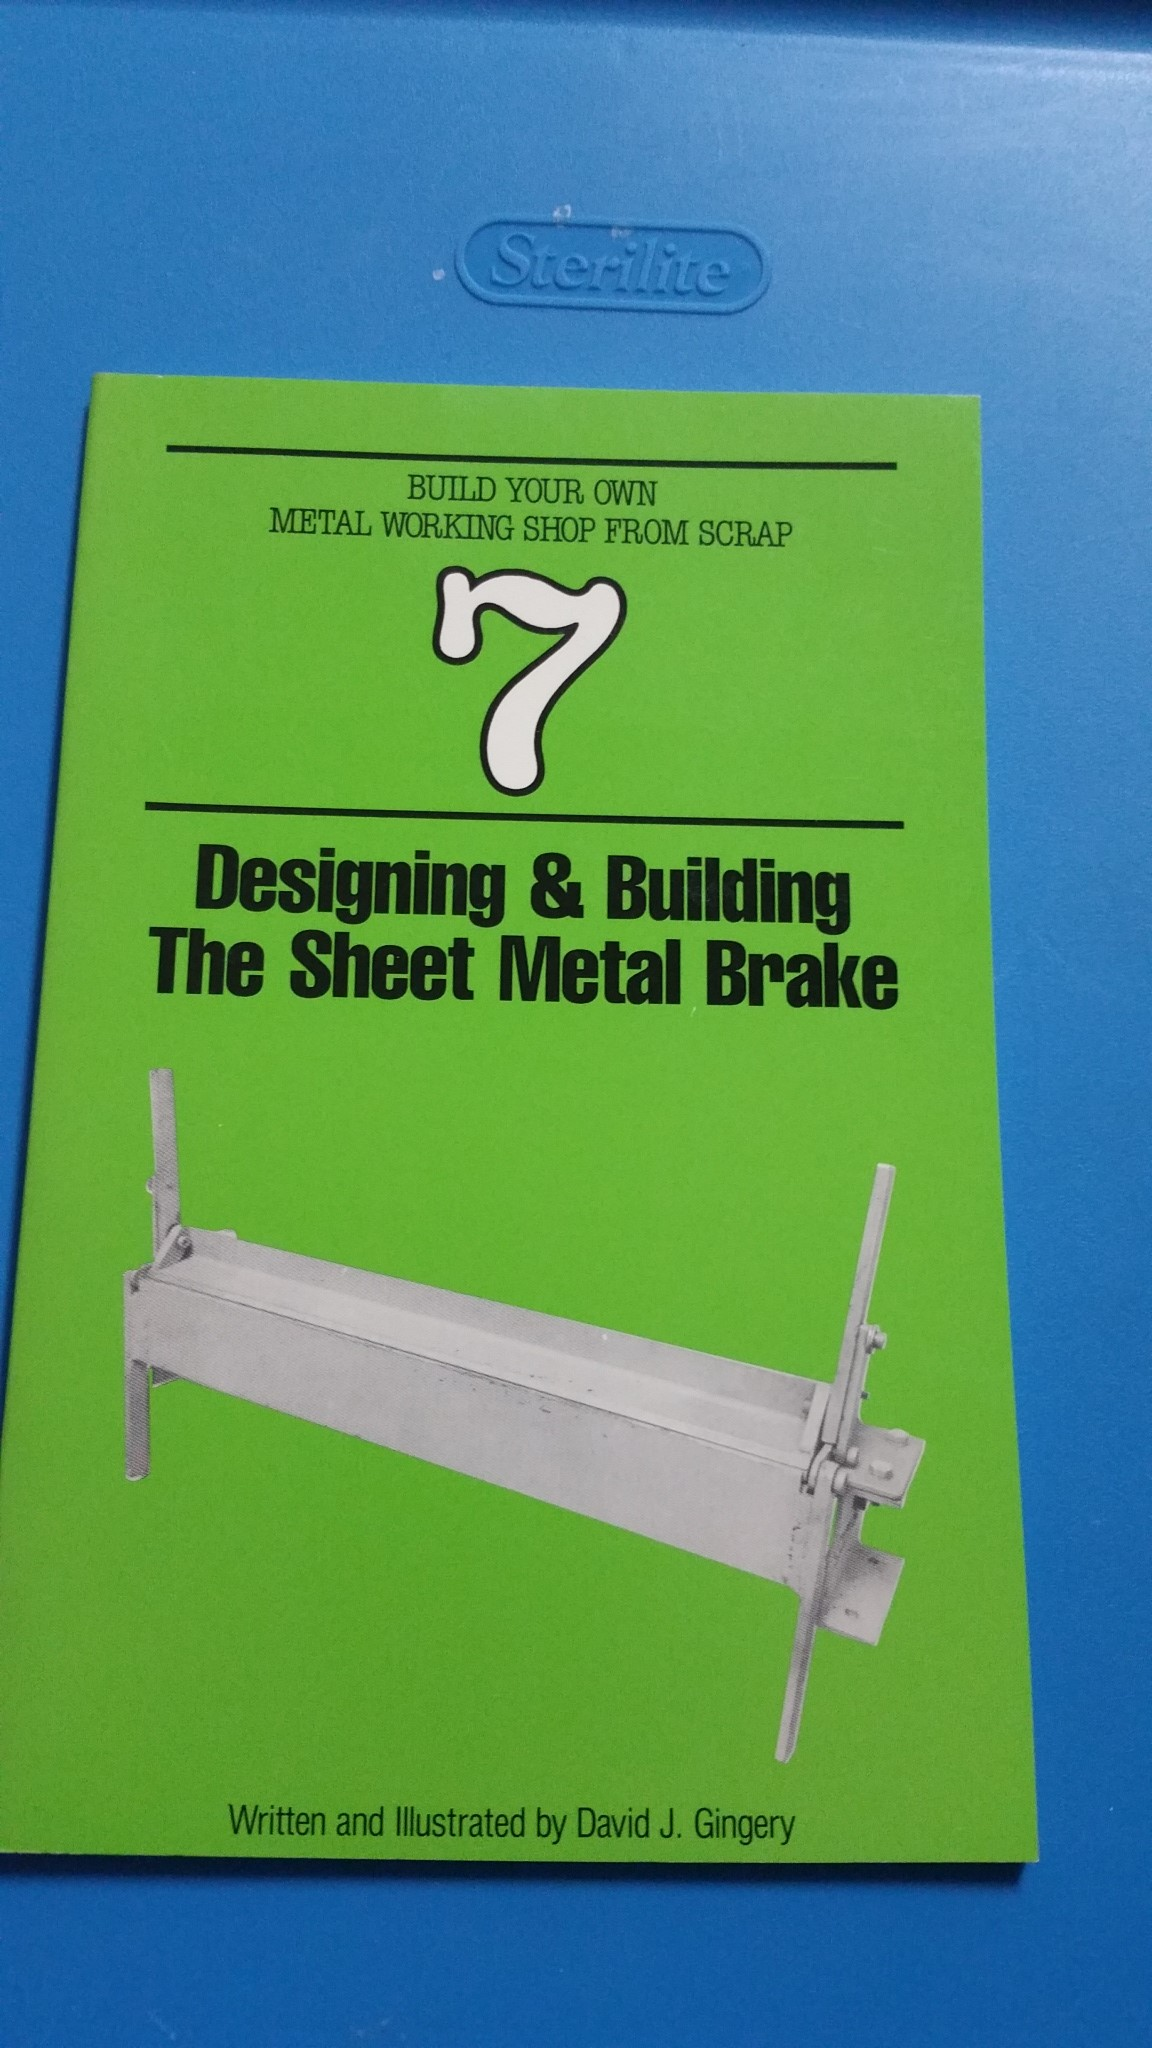 Build your own metalworking shop from scrap pdf